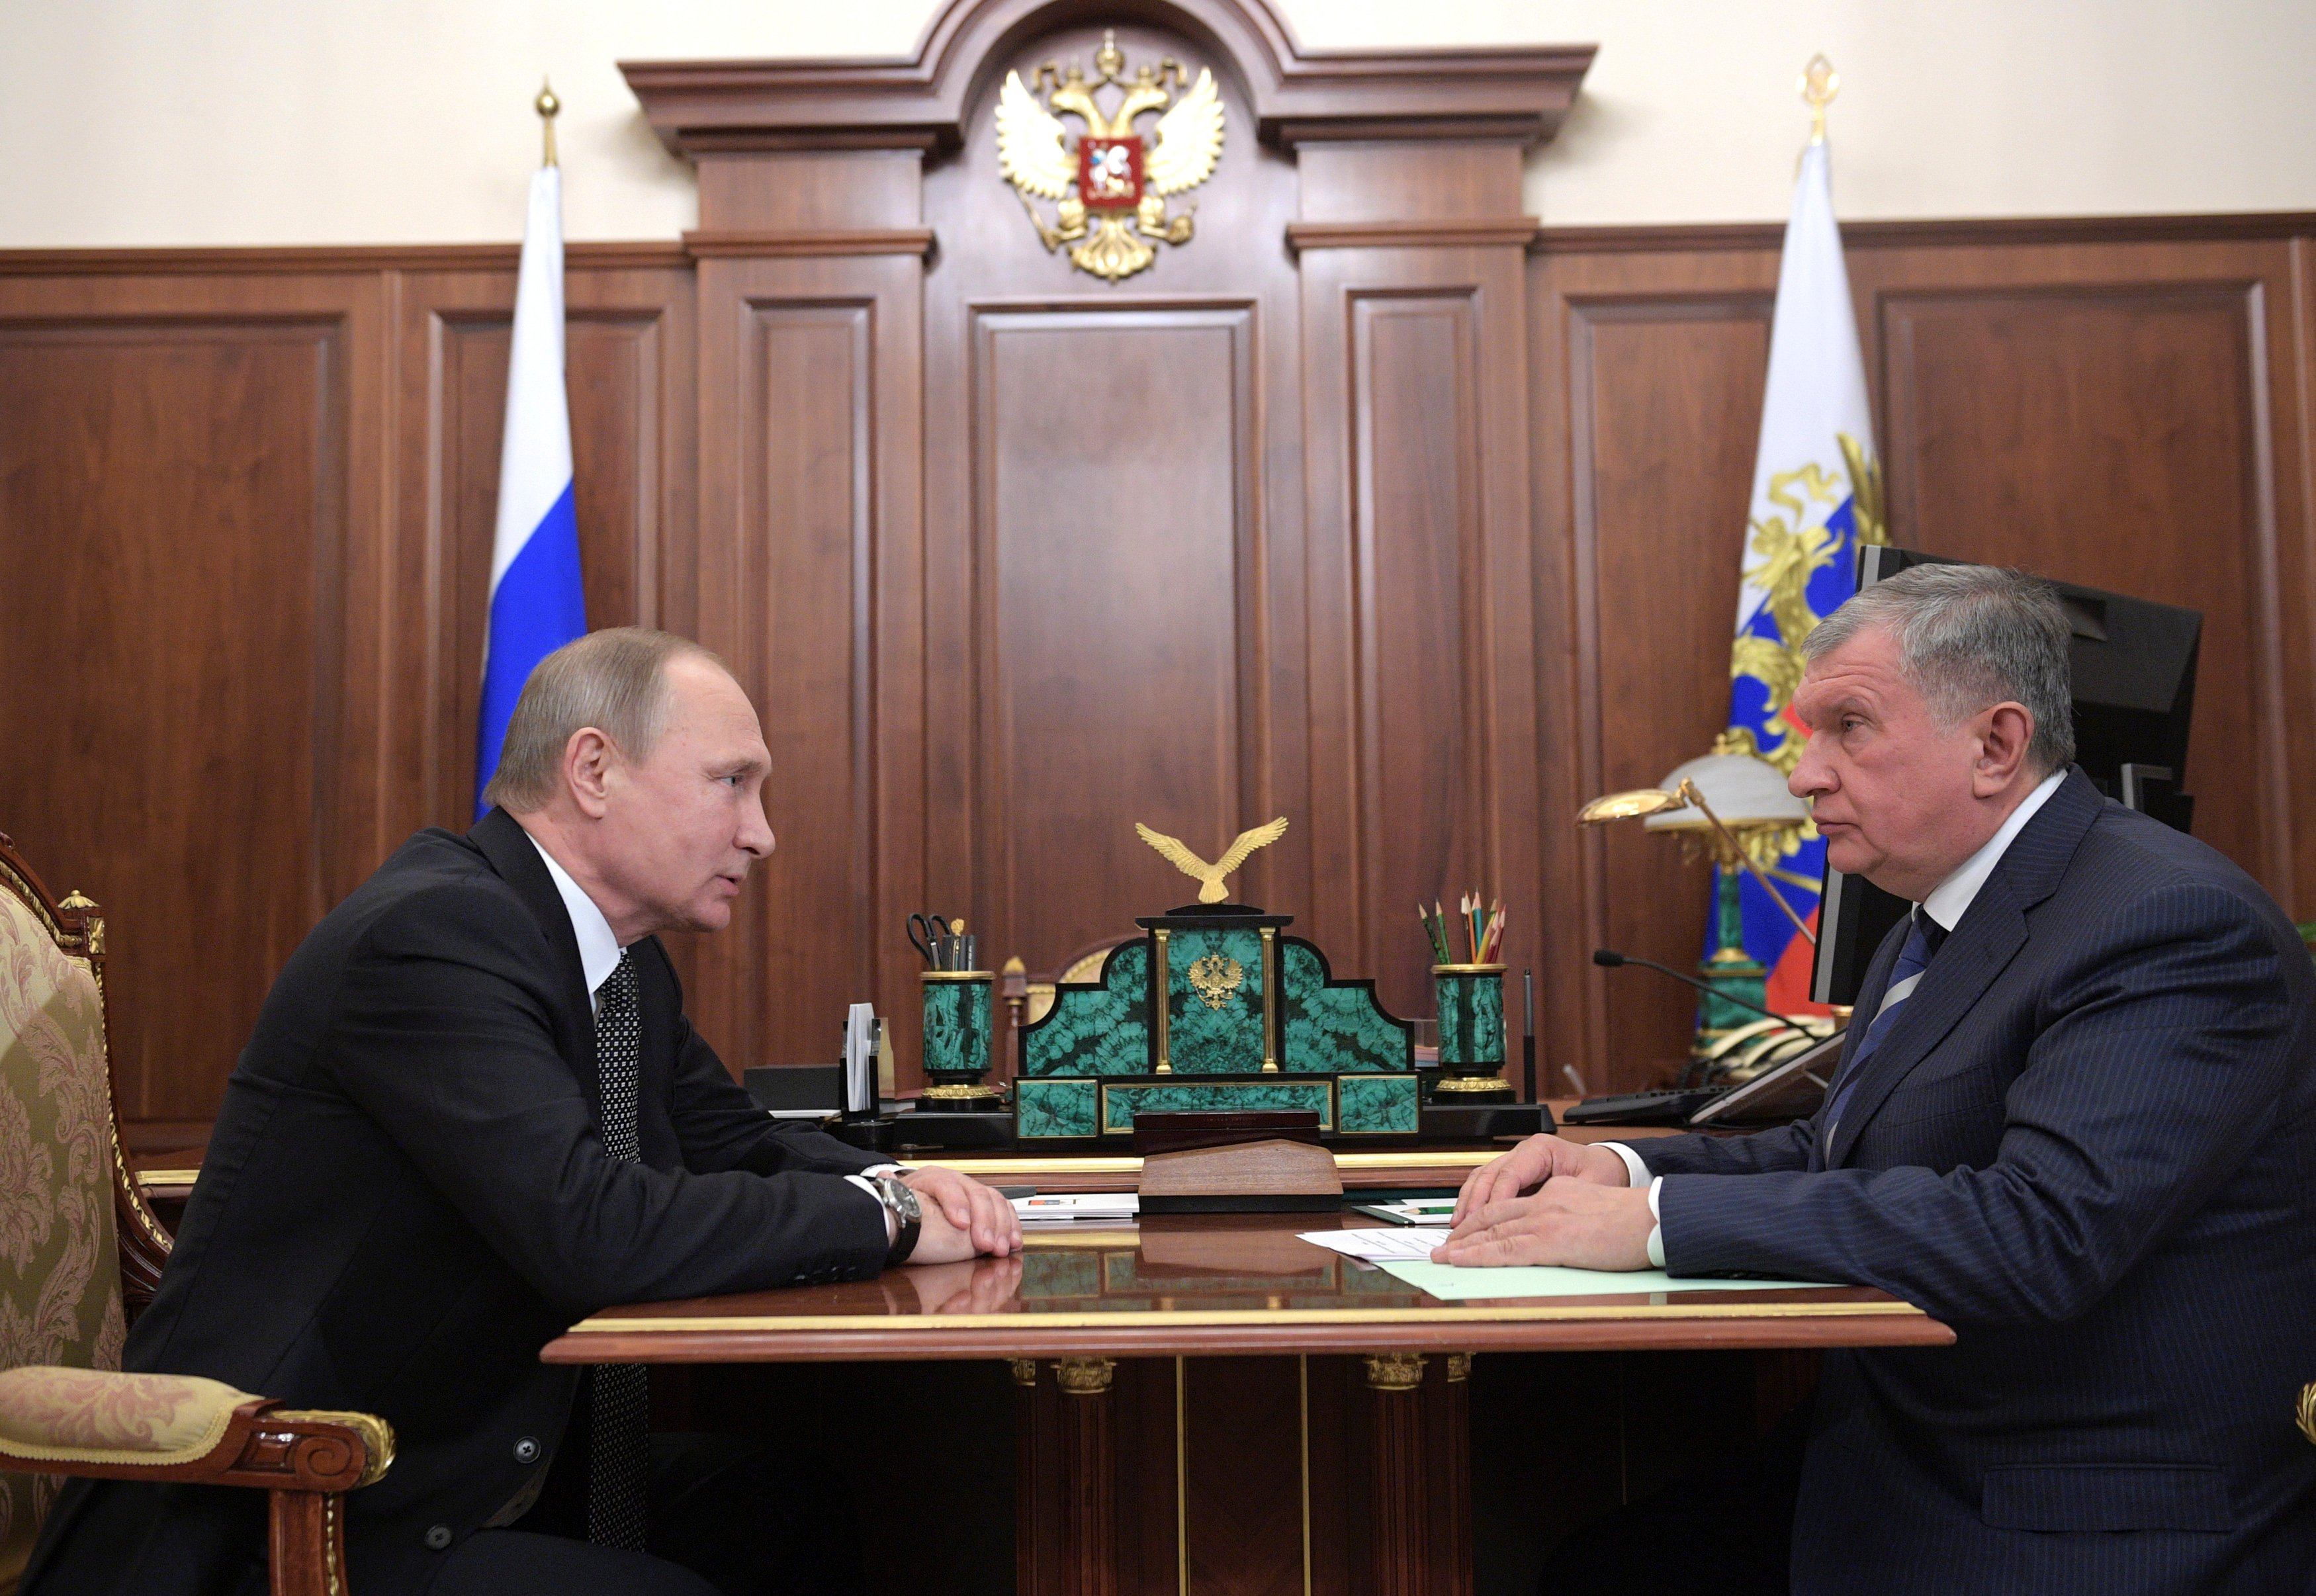 Russia's President Vladimir Putin (L) meets with Rosneft CEO Igor Sechin at the Kremlin in Moscow, Russia December 7, 2016. Sputnik/Alexei Druzhinin/Kremlin via REUTERS ATTENTION EDITORS - THIS IMAGE WAS PROVIDED BY A THIRD PARTY. EDITORIAL USE ONLY.